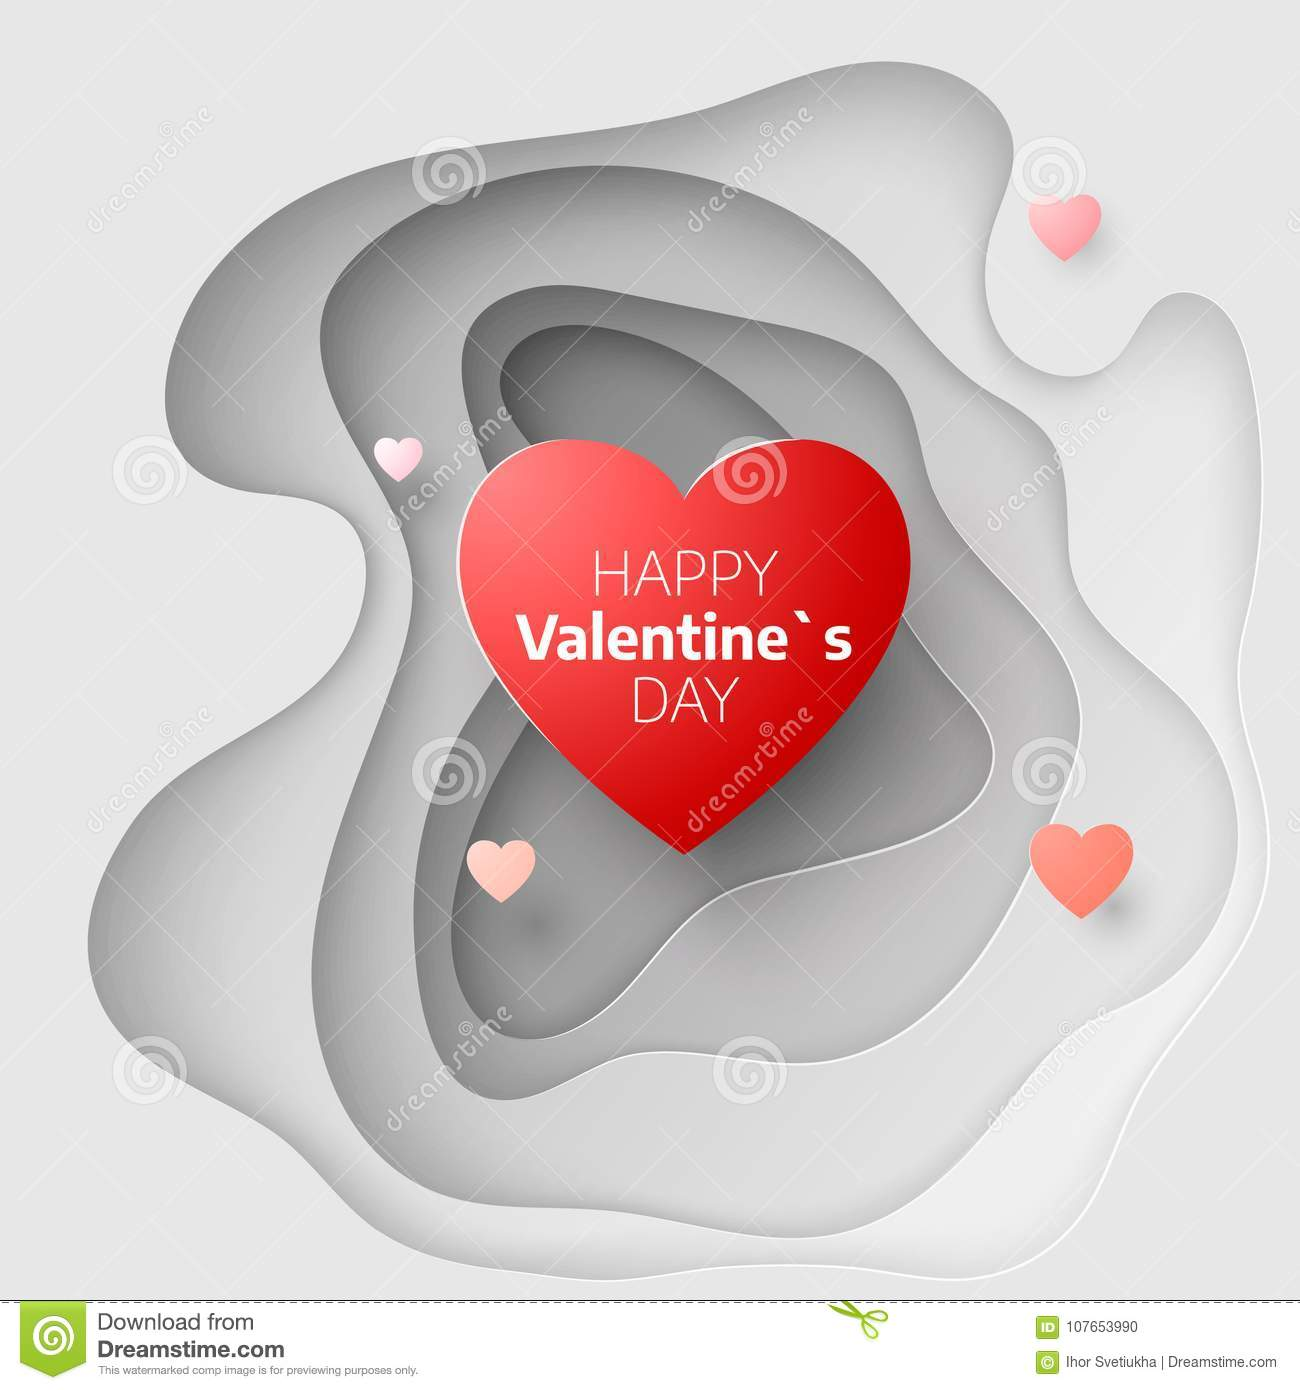 Paper Art Concept Of Valentines Day February 14 Greeting Card Cover